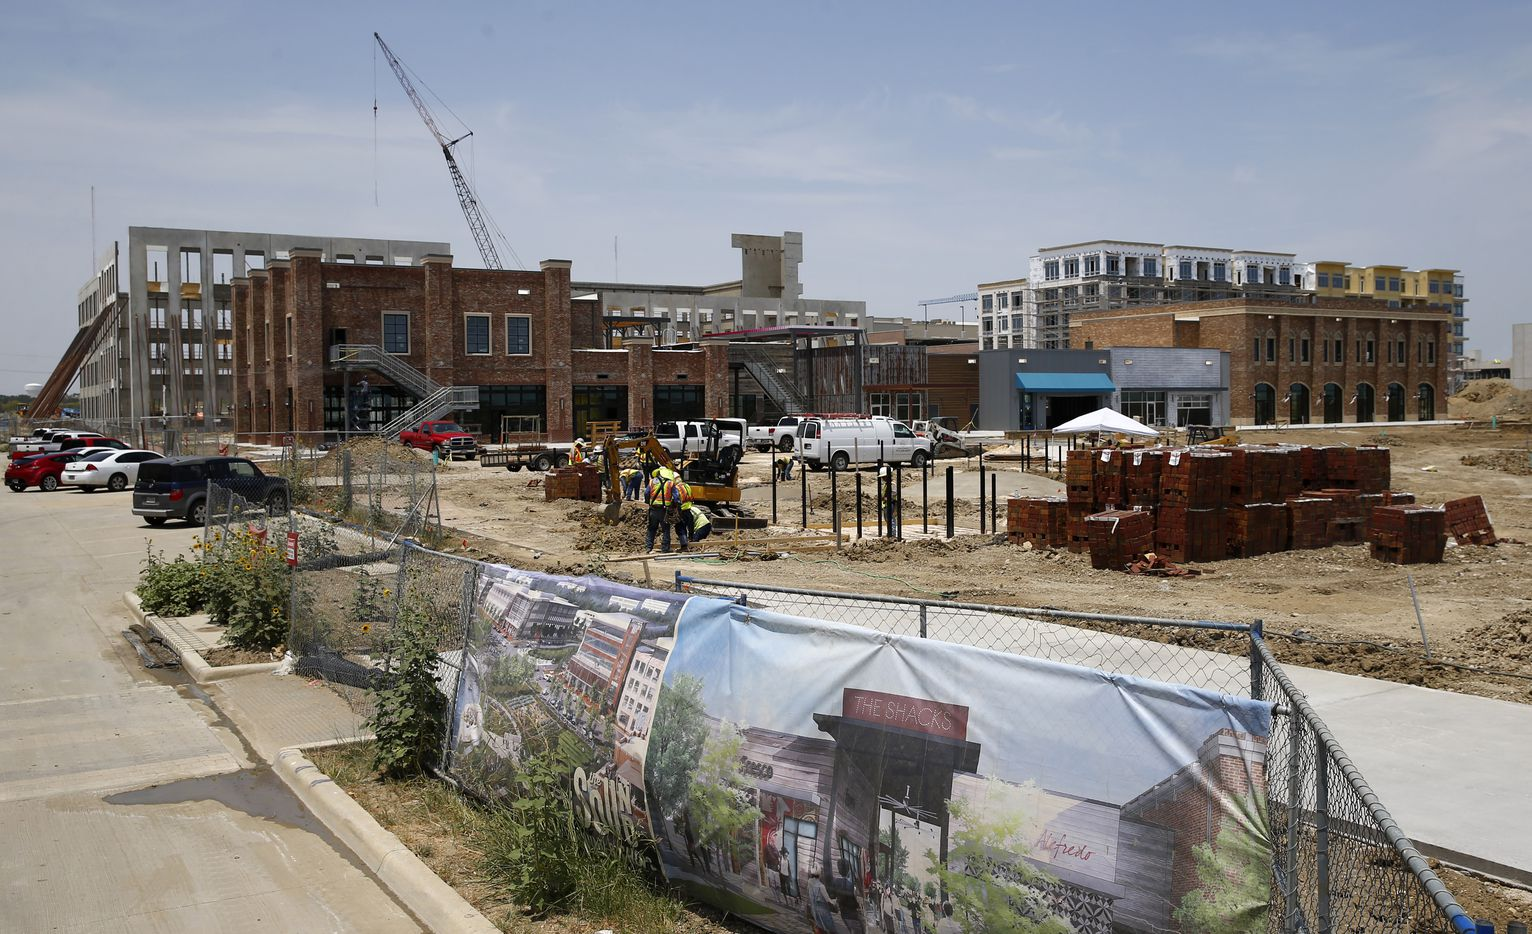 Construction of the new retail village on the shore of North Lake in the Cypress Waters development.